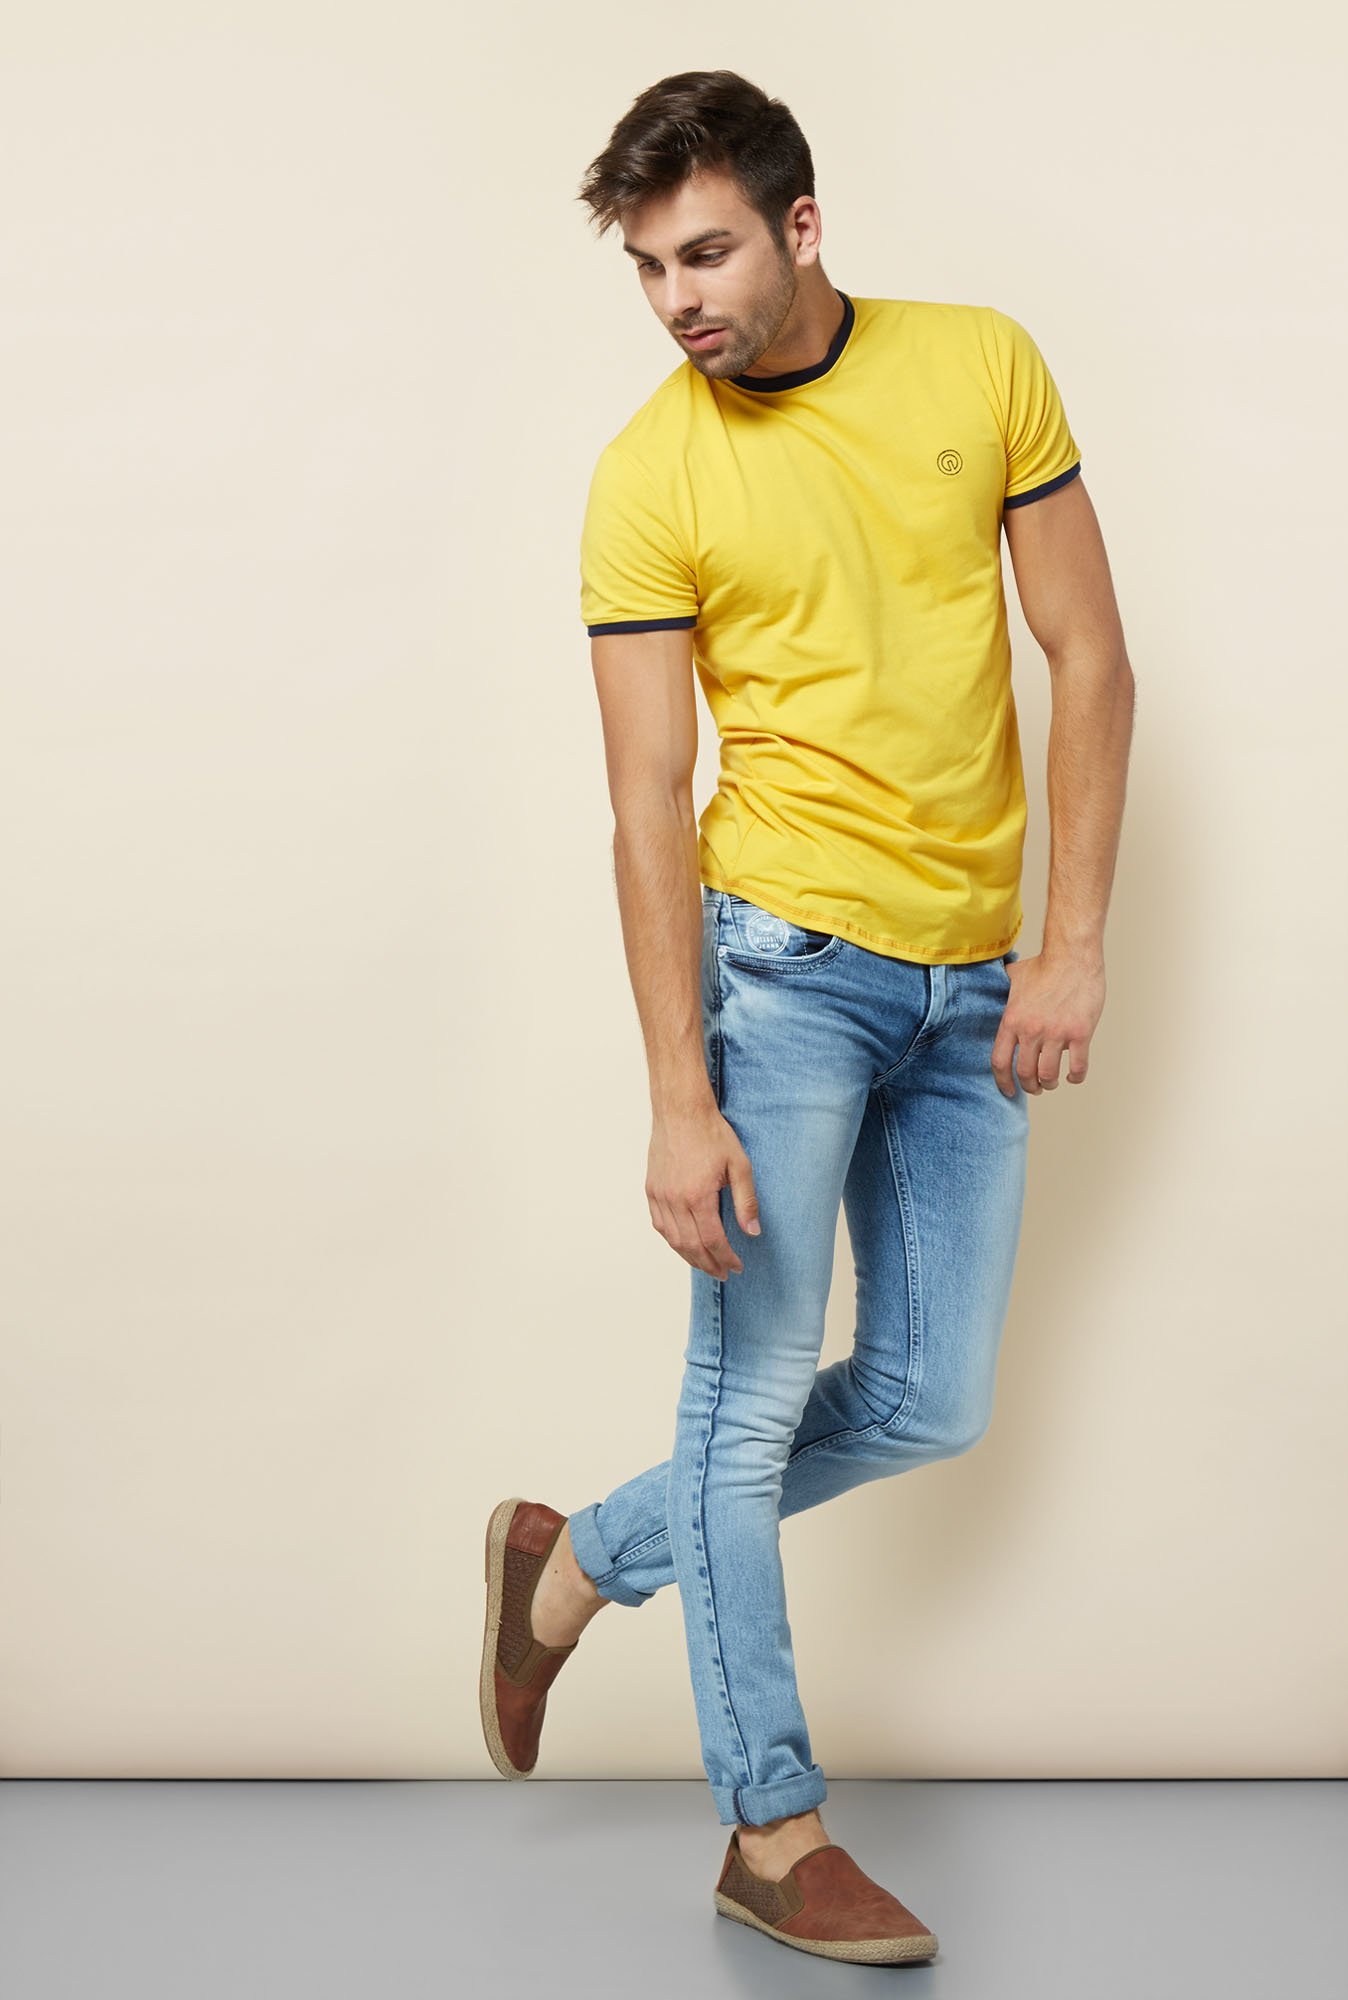 Integriti Yellow Solid Slim Fit T Shirt